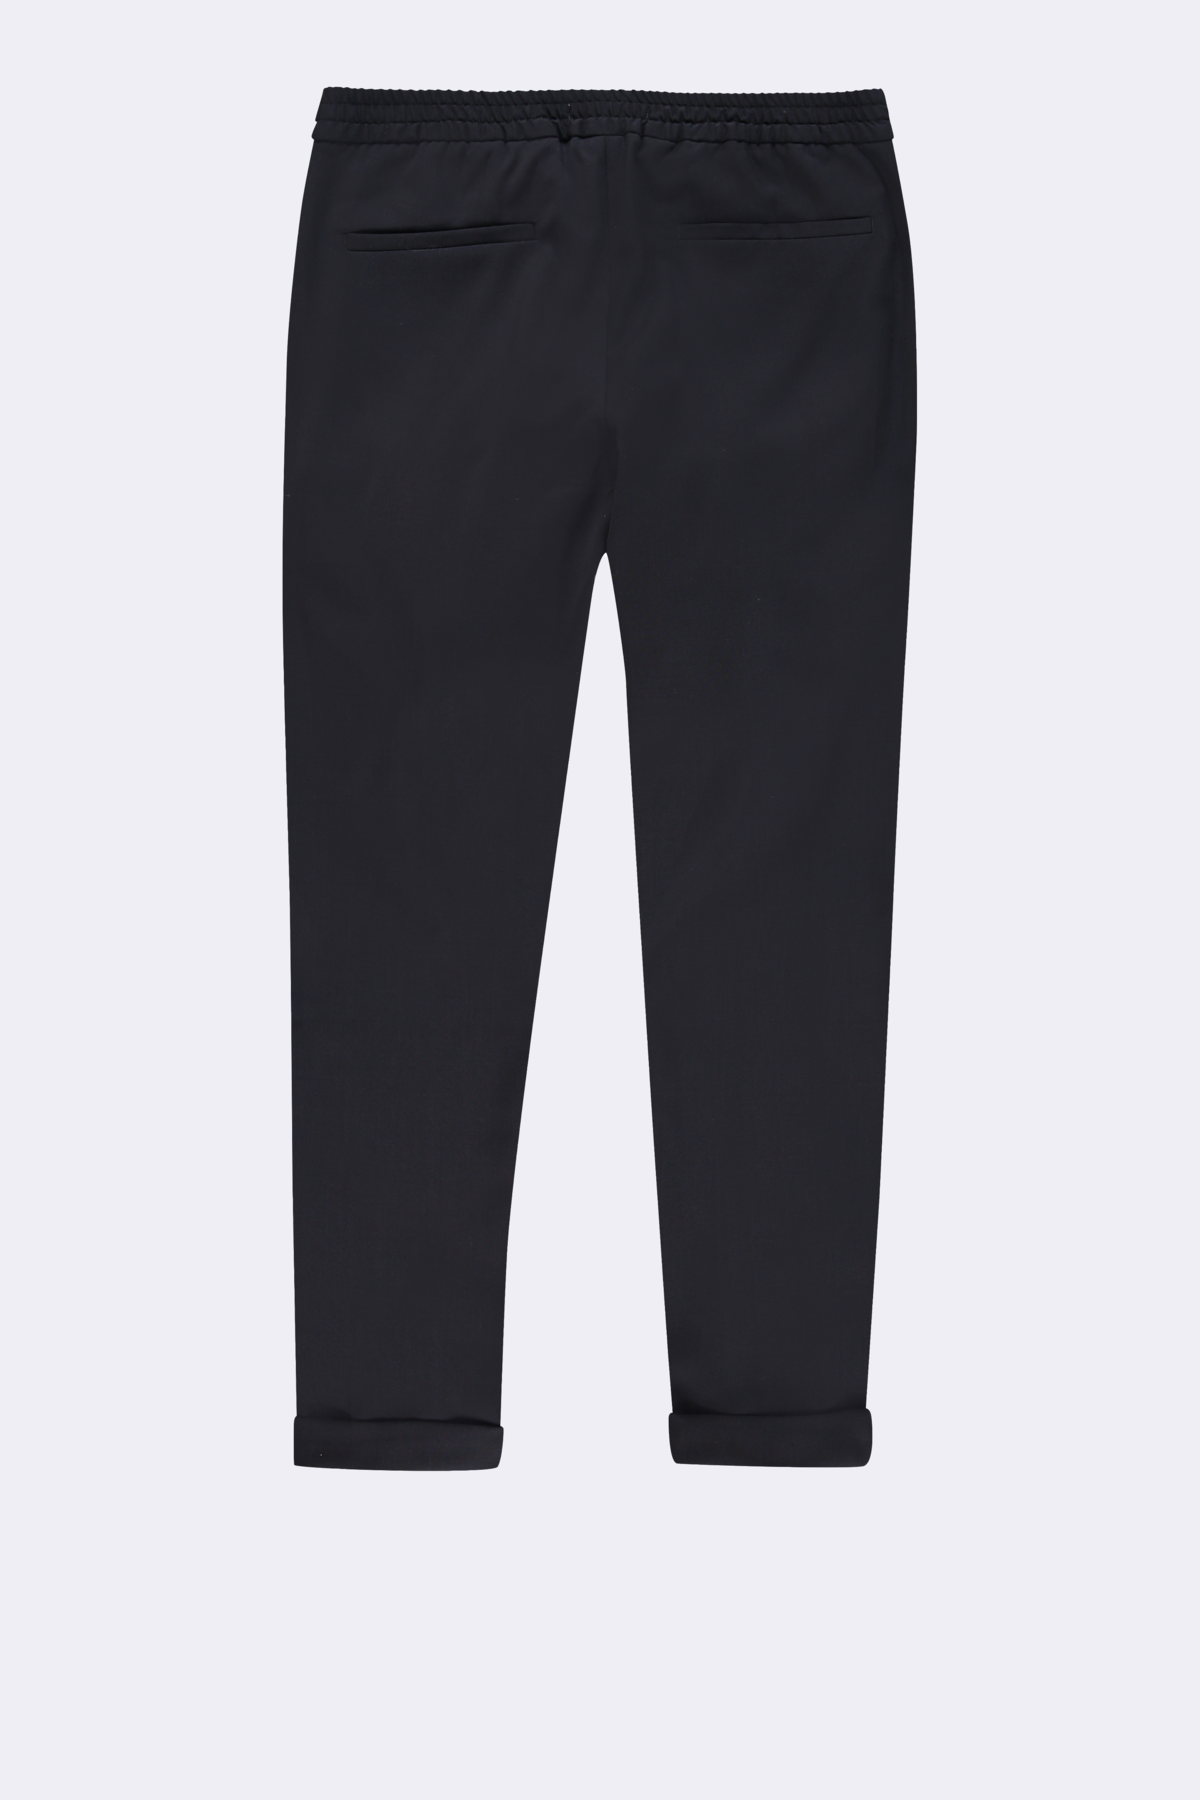 The Good People - Bite - TAPERED WOVEN PANTS